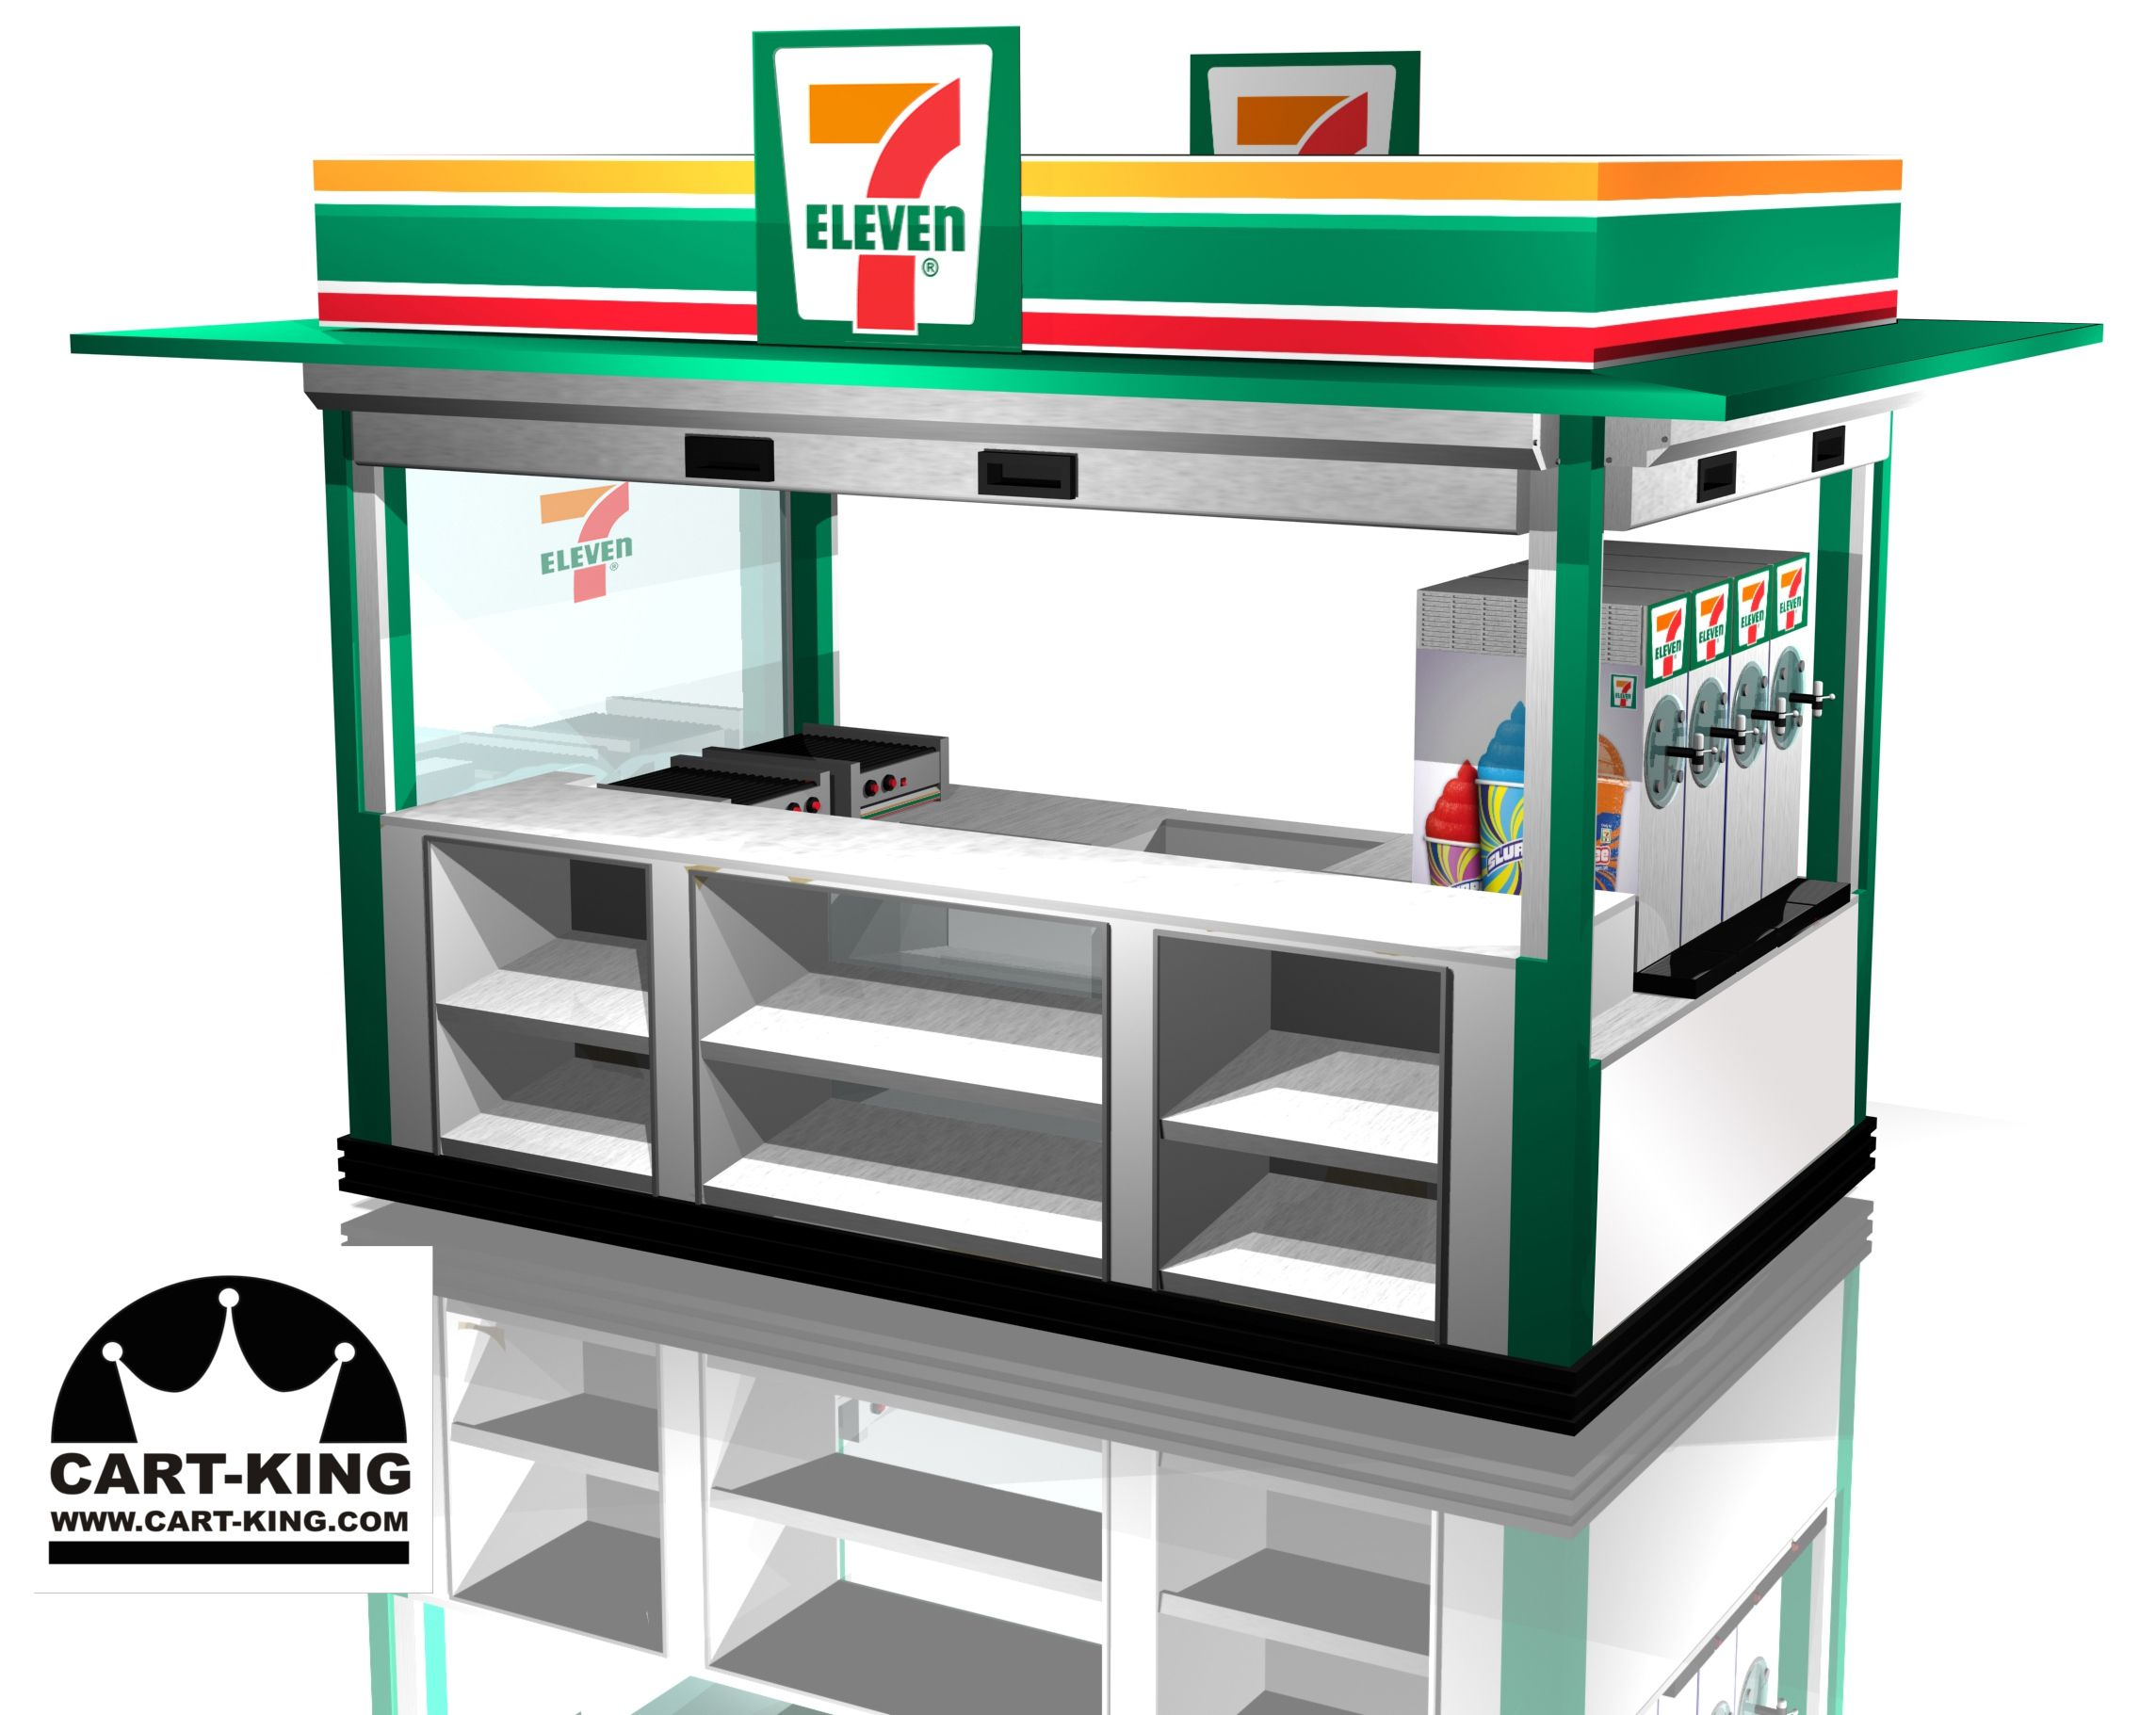 7 11 design for outdoor kiosk concept new cart and kiosk Architecture firm for sale